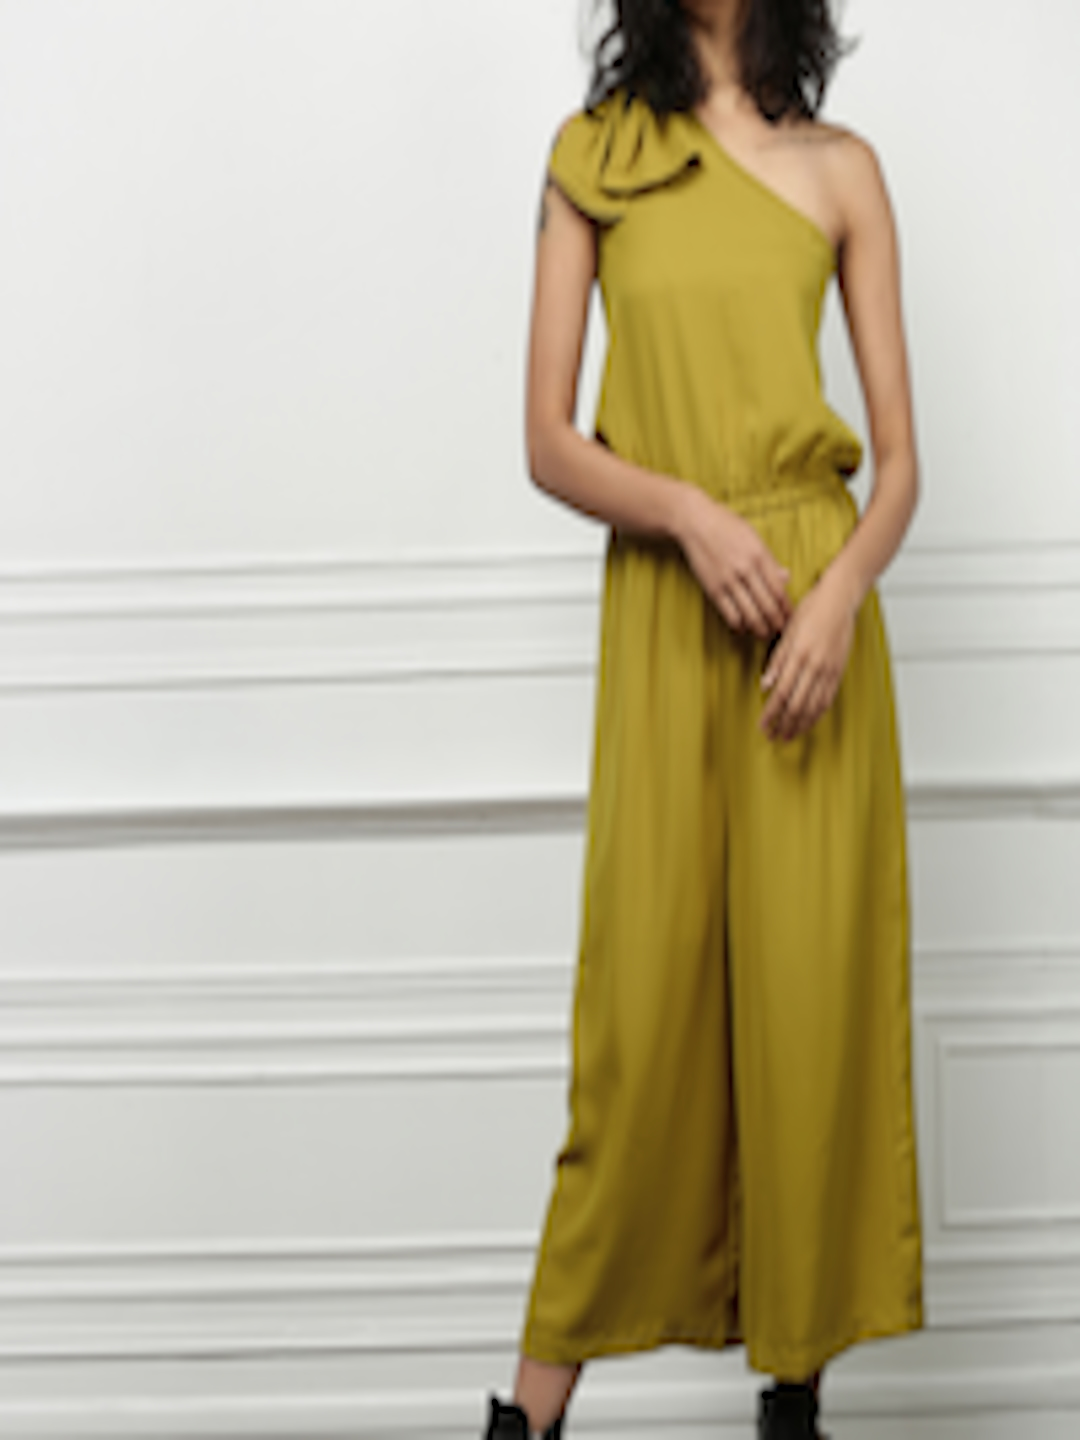 Buy All About You From Deepika Padukone Olive Green ...